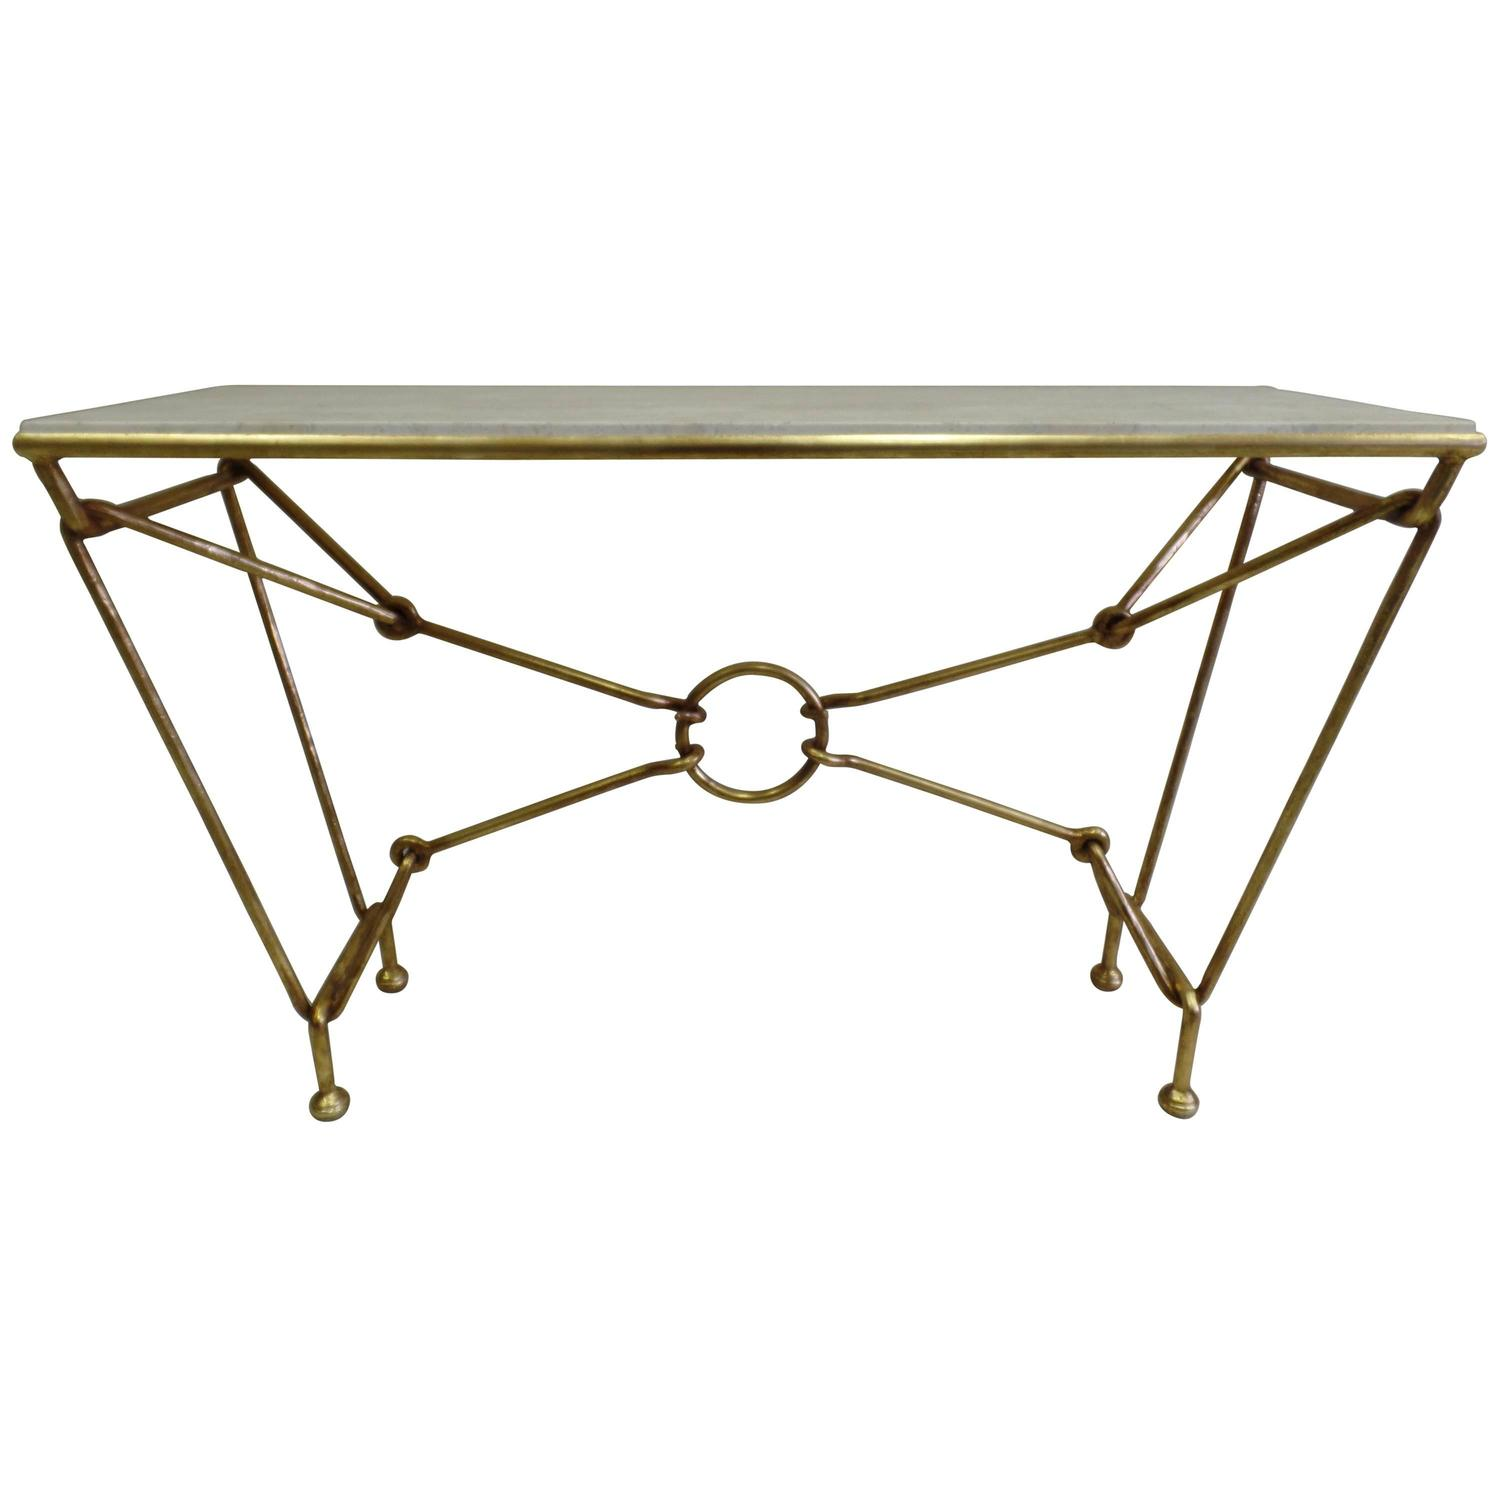 Italian Modern Neoclassical Gilt Iron Console by Giovanni Banci